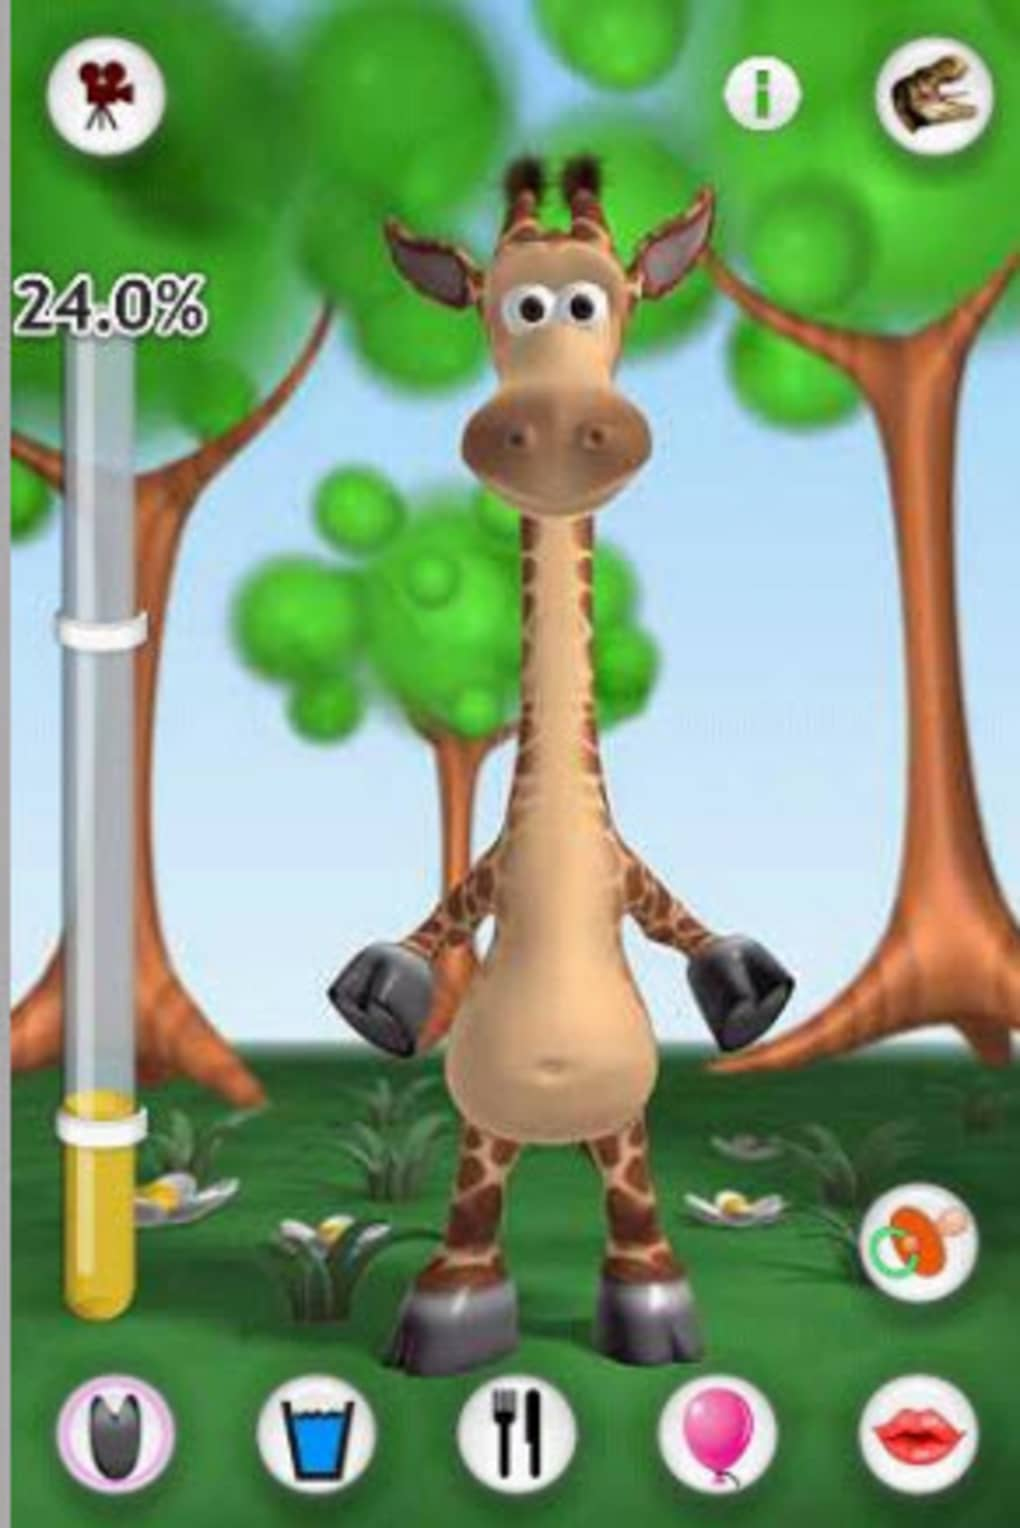 Talking gina the giraffe for android download apk free.